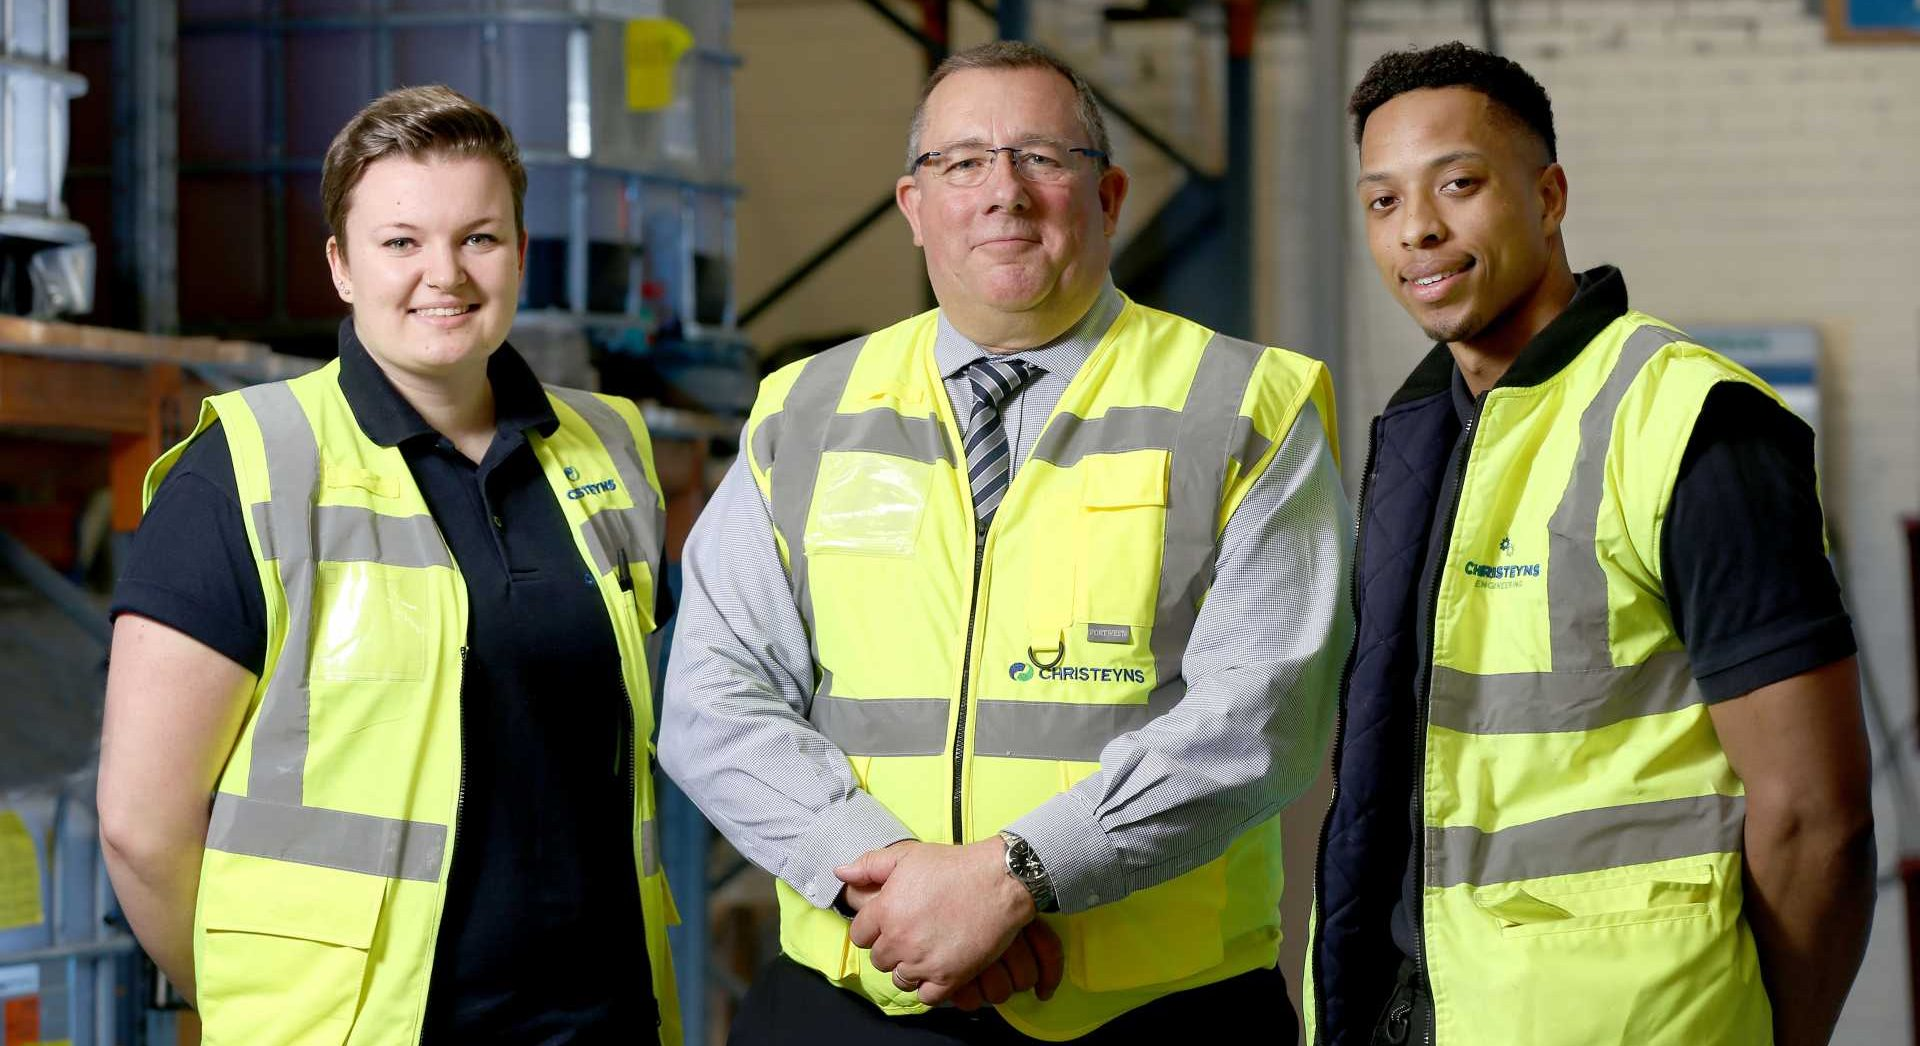 Captured at the launch of the inaugural Bradford Manufacturing Week in 2018 is Founder Nick Garthwaite, with Christeyns apprentices Lauren Bean (L) and Jordan Smith (R) IMAGE: BRADFORD MANUFACTURING WEEKS